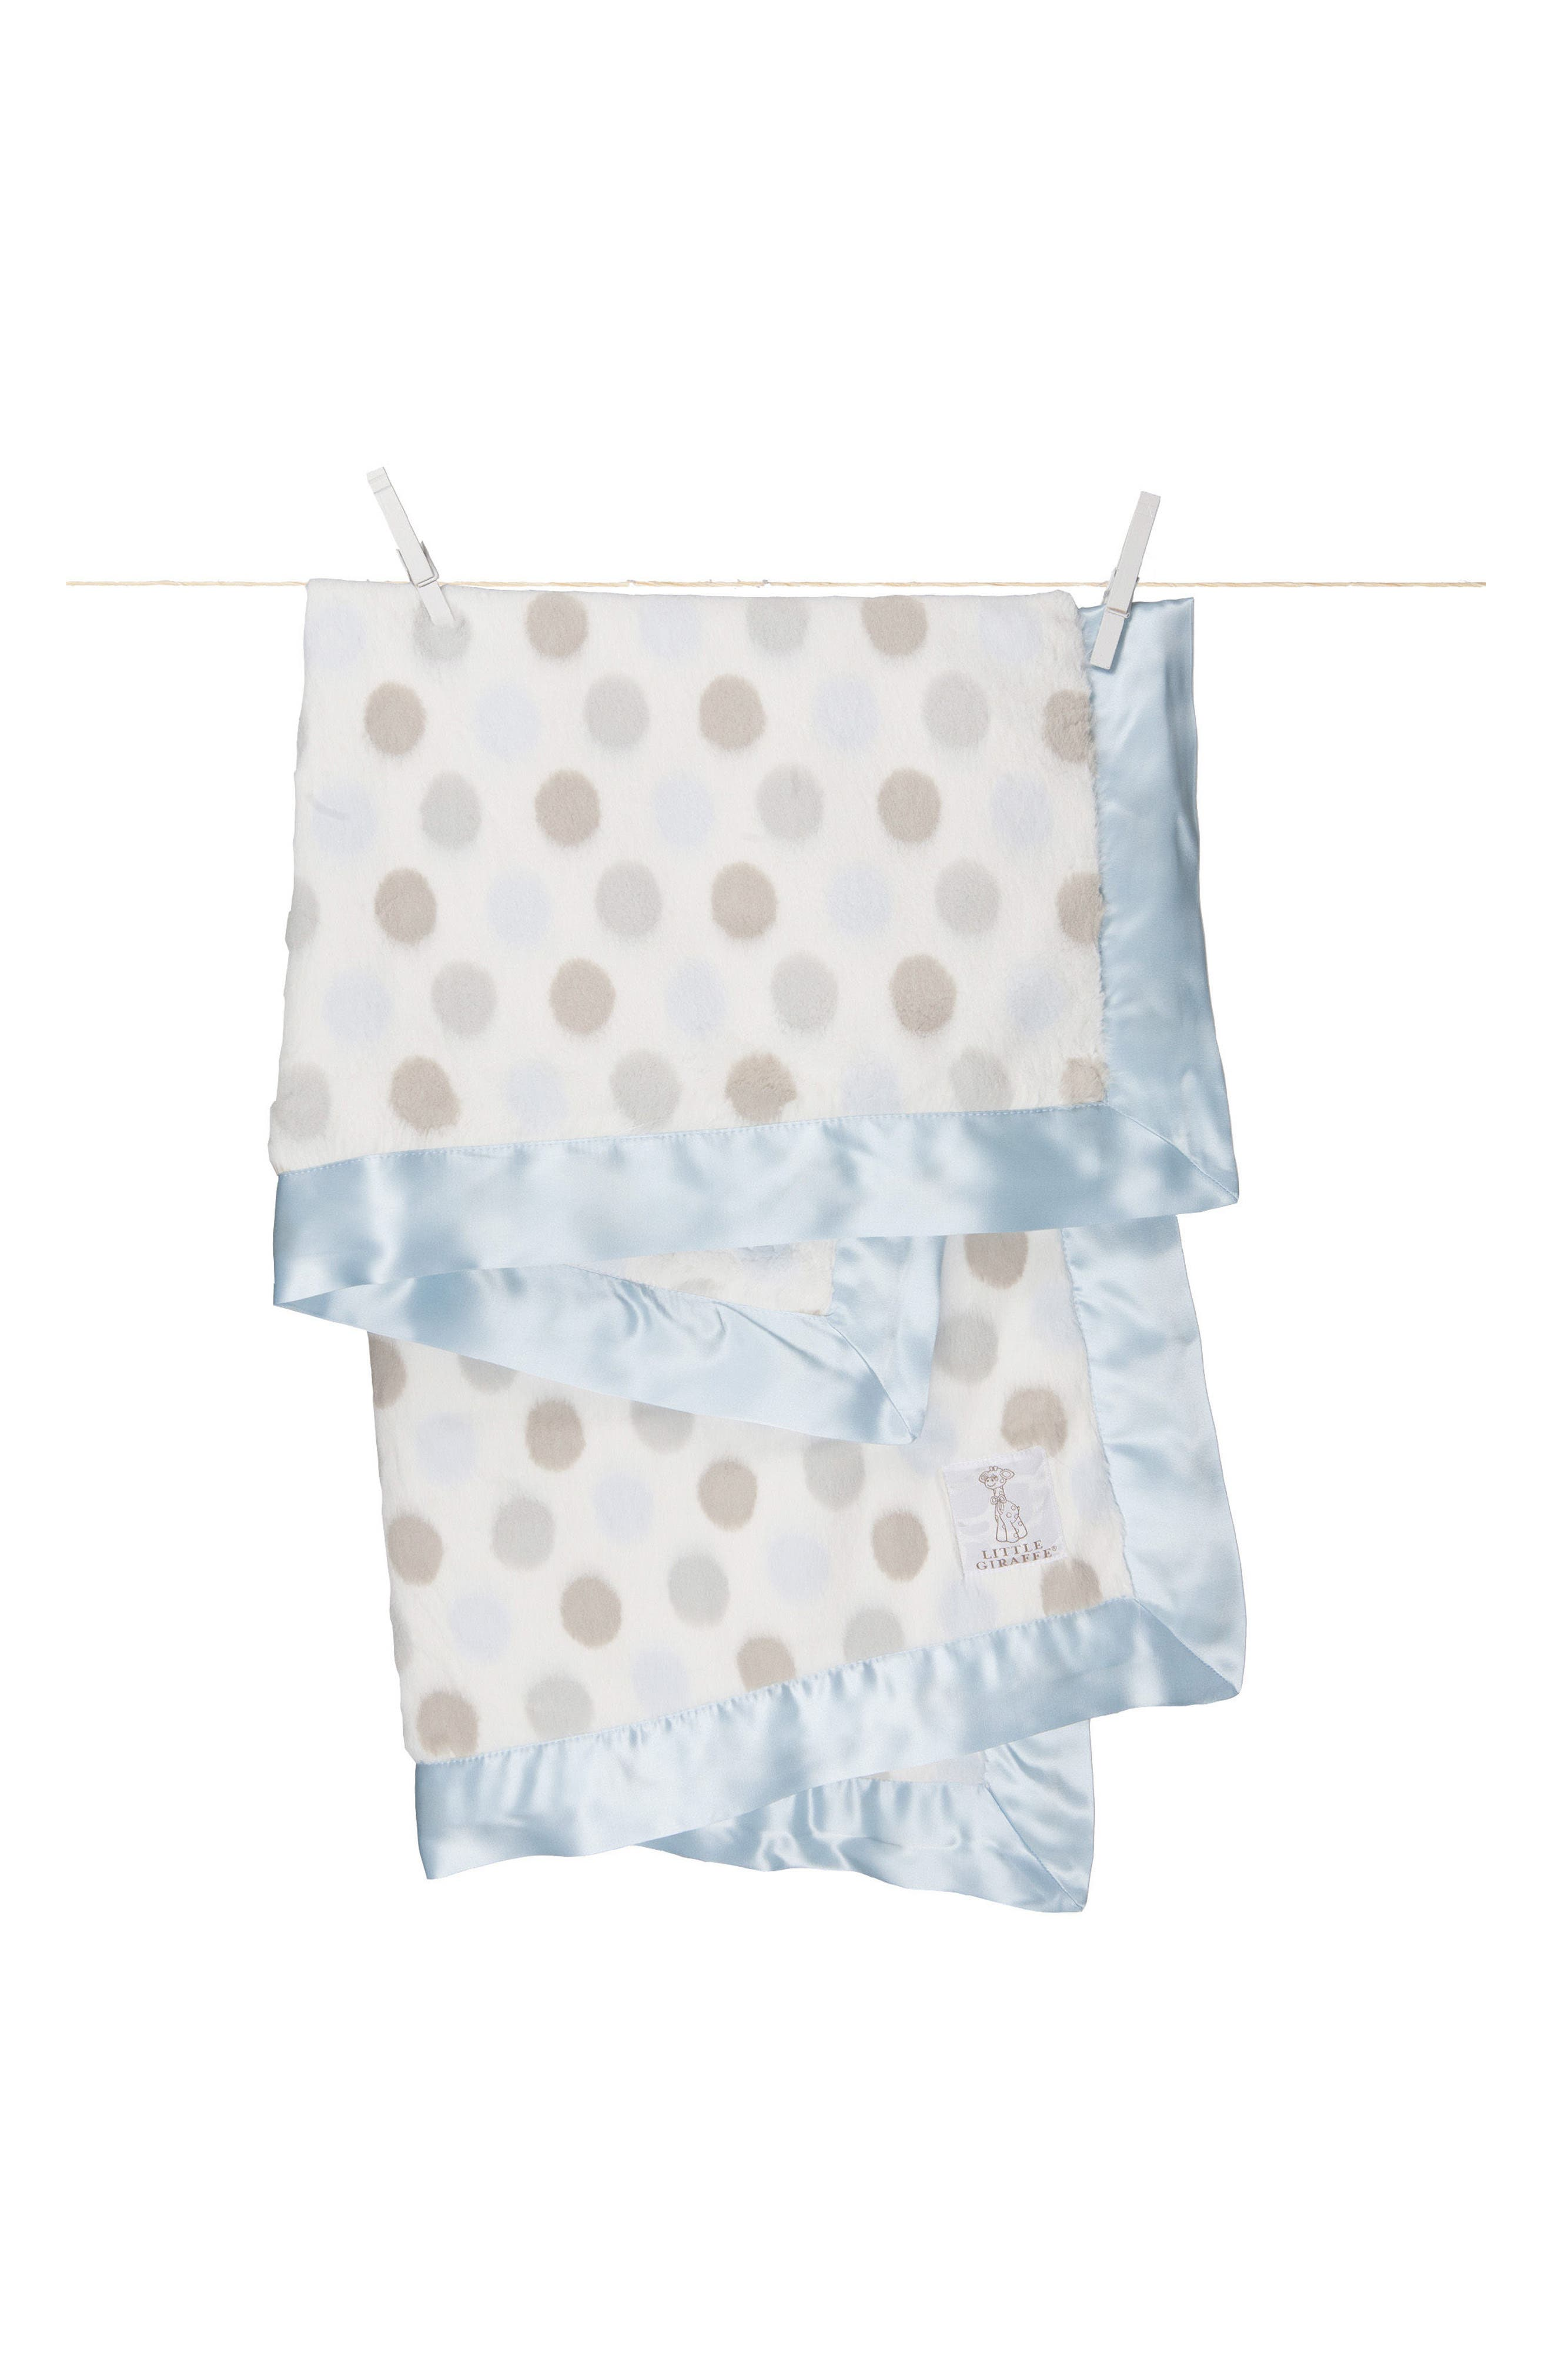 Main Image - Little Giraffe 'Luxe Dot' Blanket